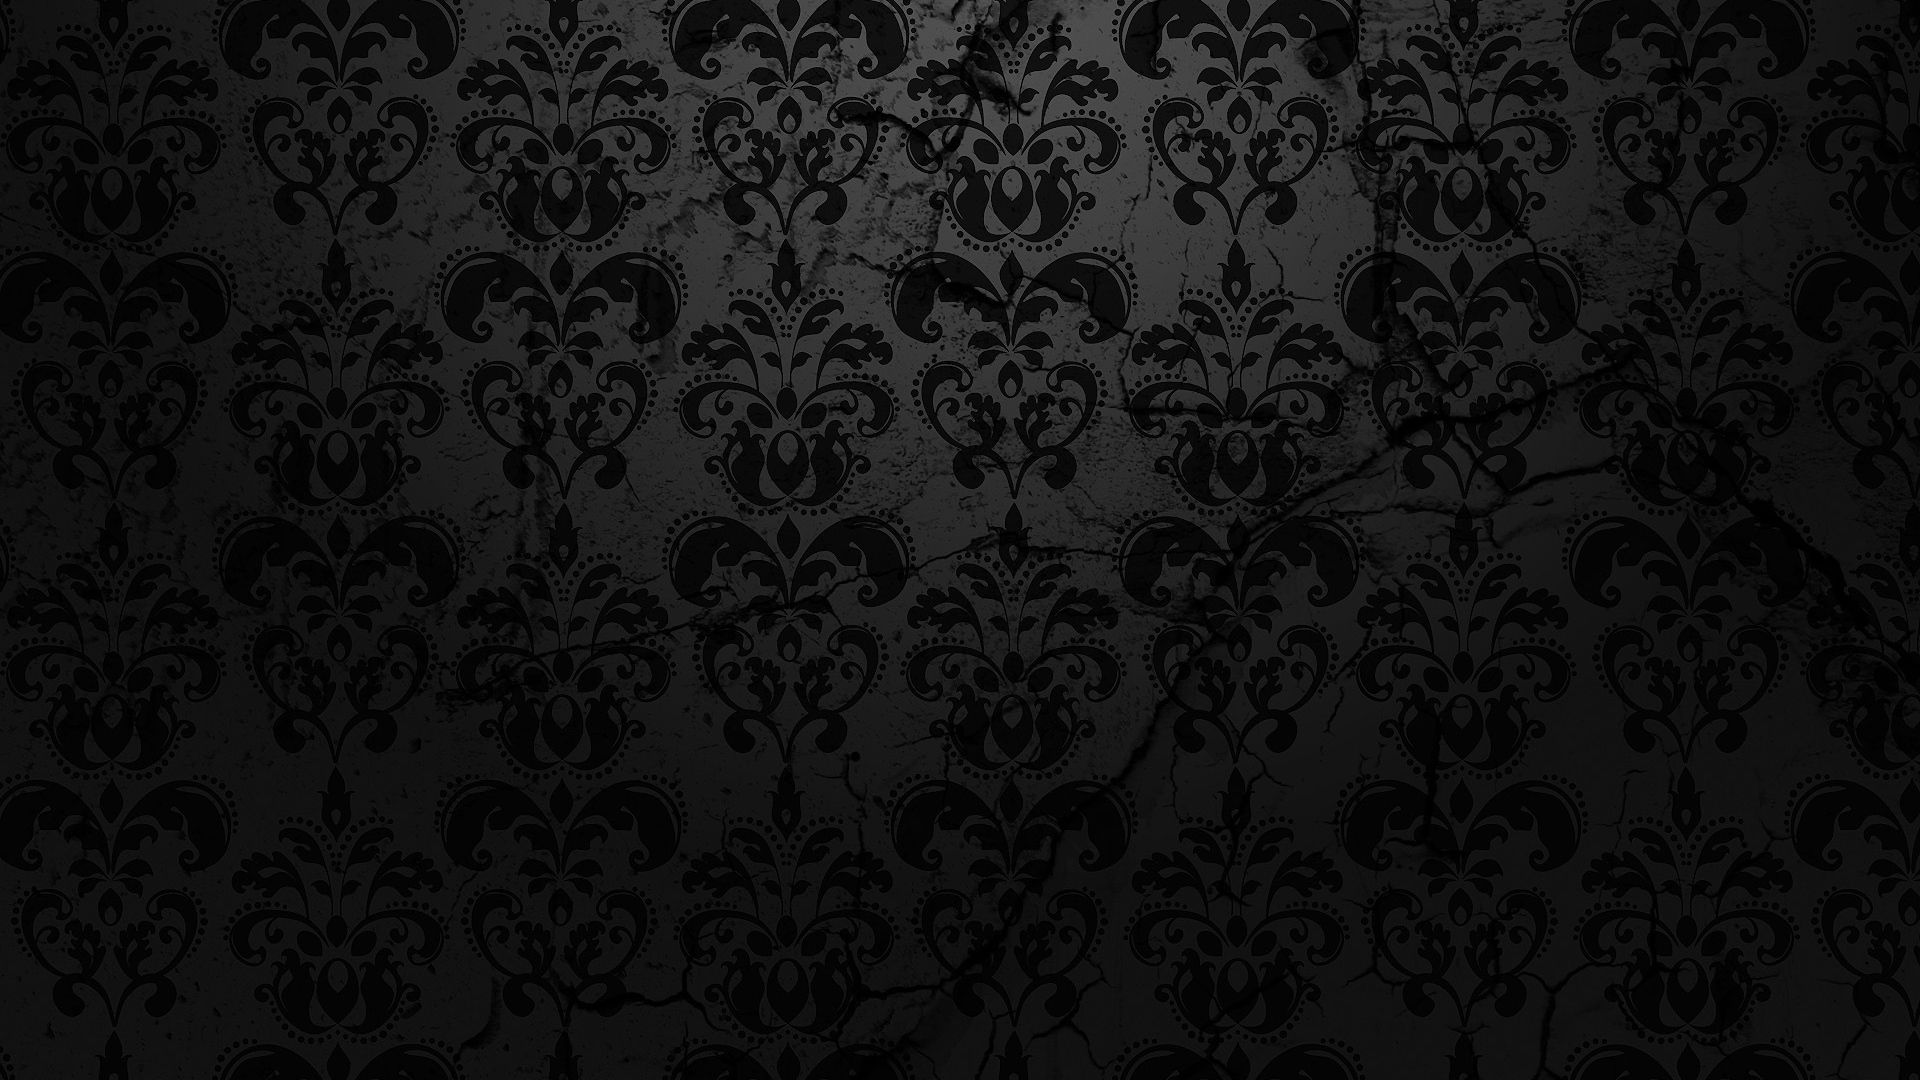 Download Wallpaper 1920x1080 Texture Pattern Black Background Full Hd 1080p Hd Backgroun Black Background Wallpaper Plain Black Wallpaper Textured Wallpaper